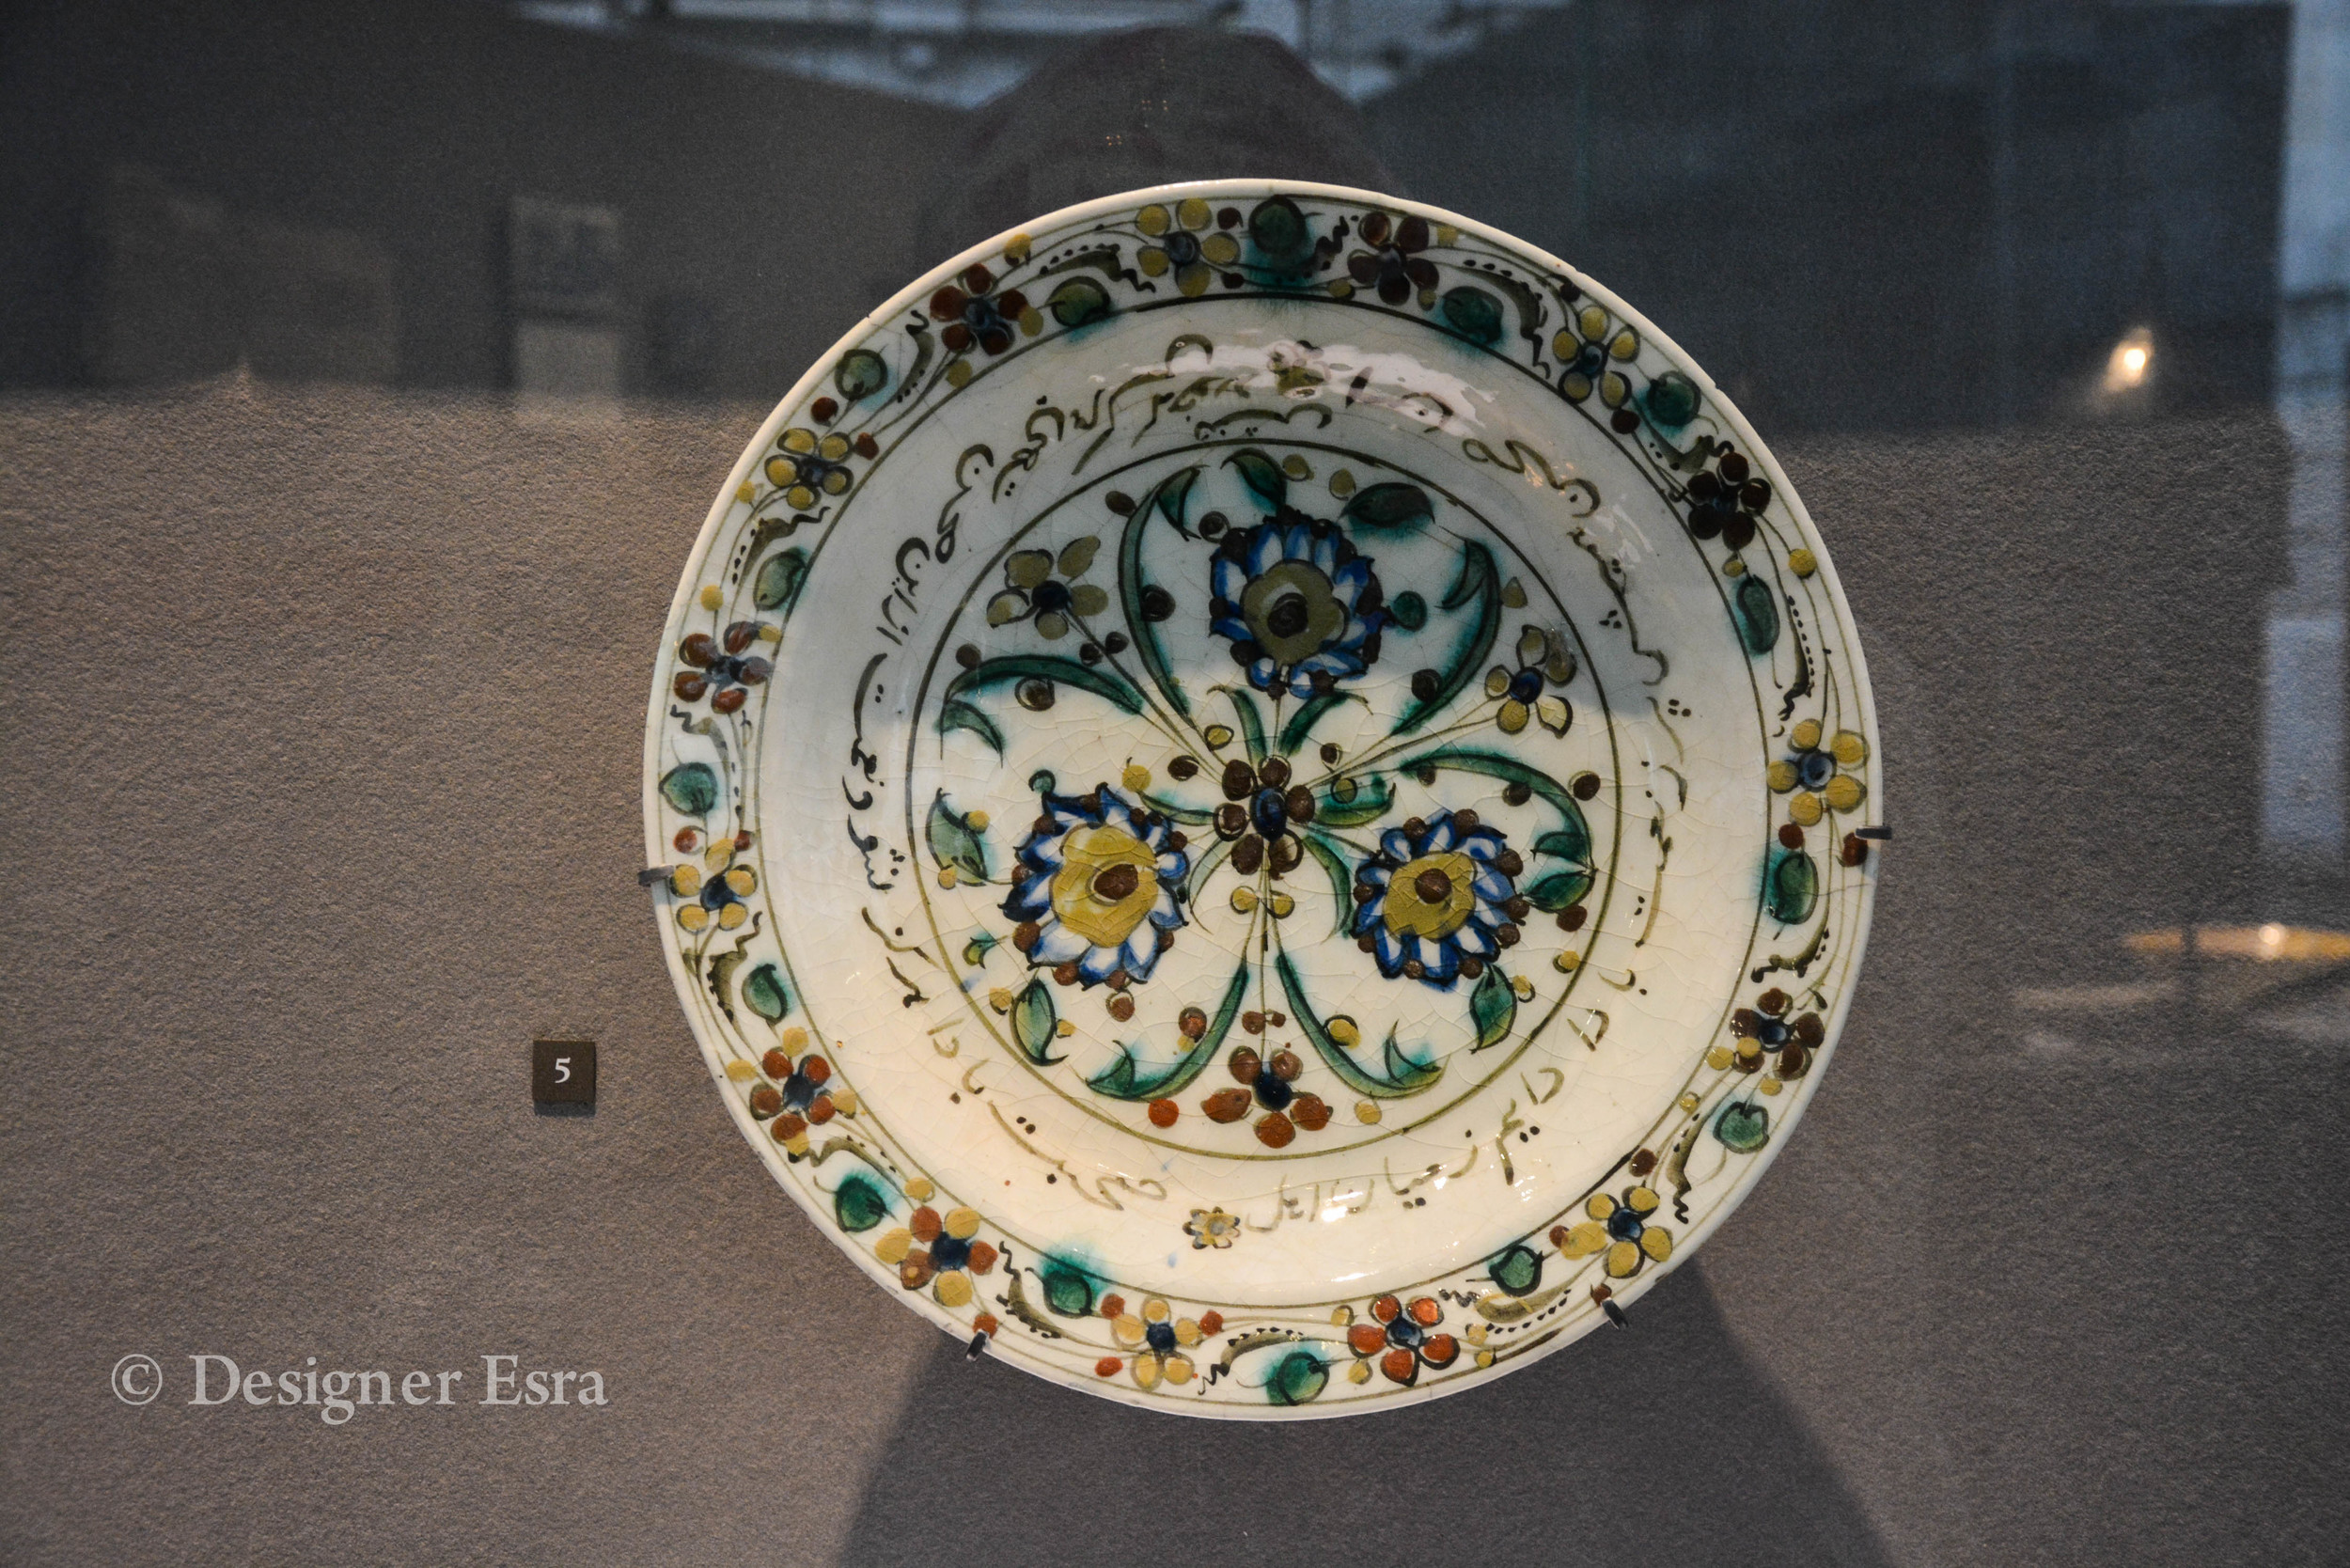 Islamic Art in the Louvre in Paris